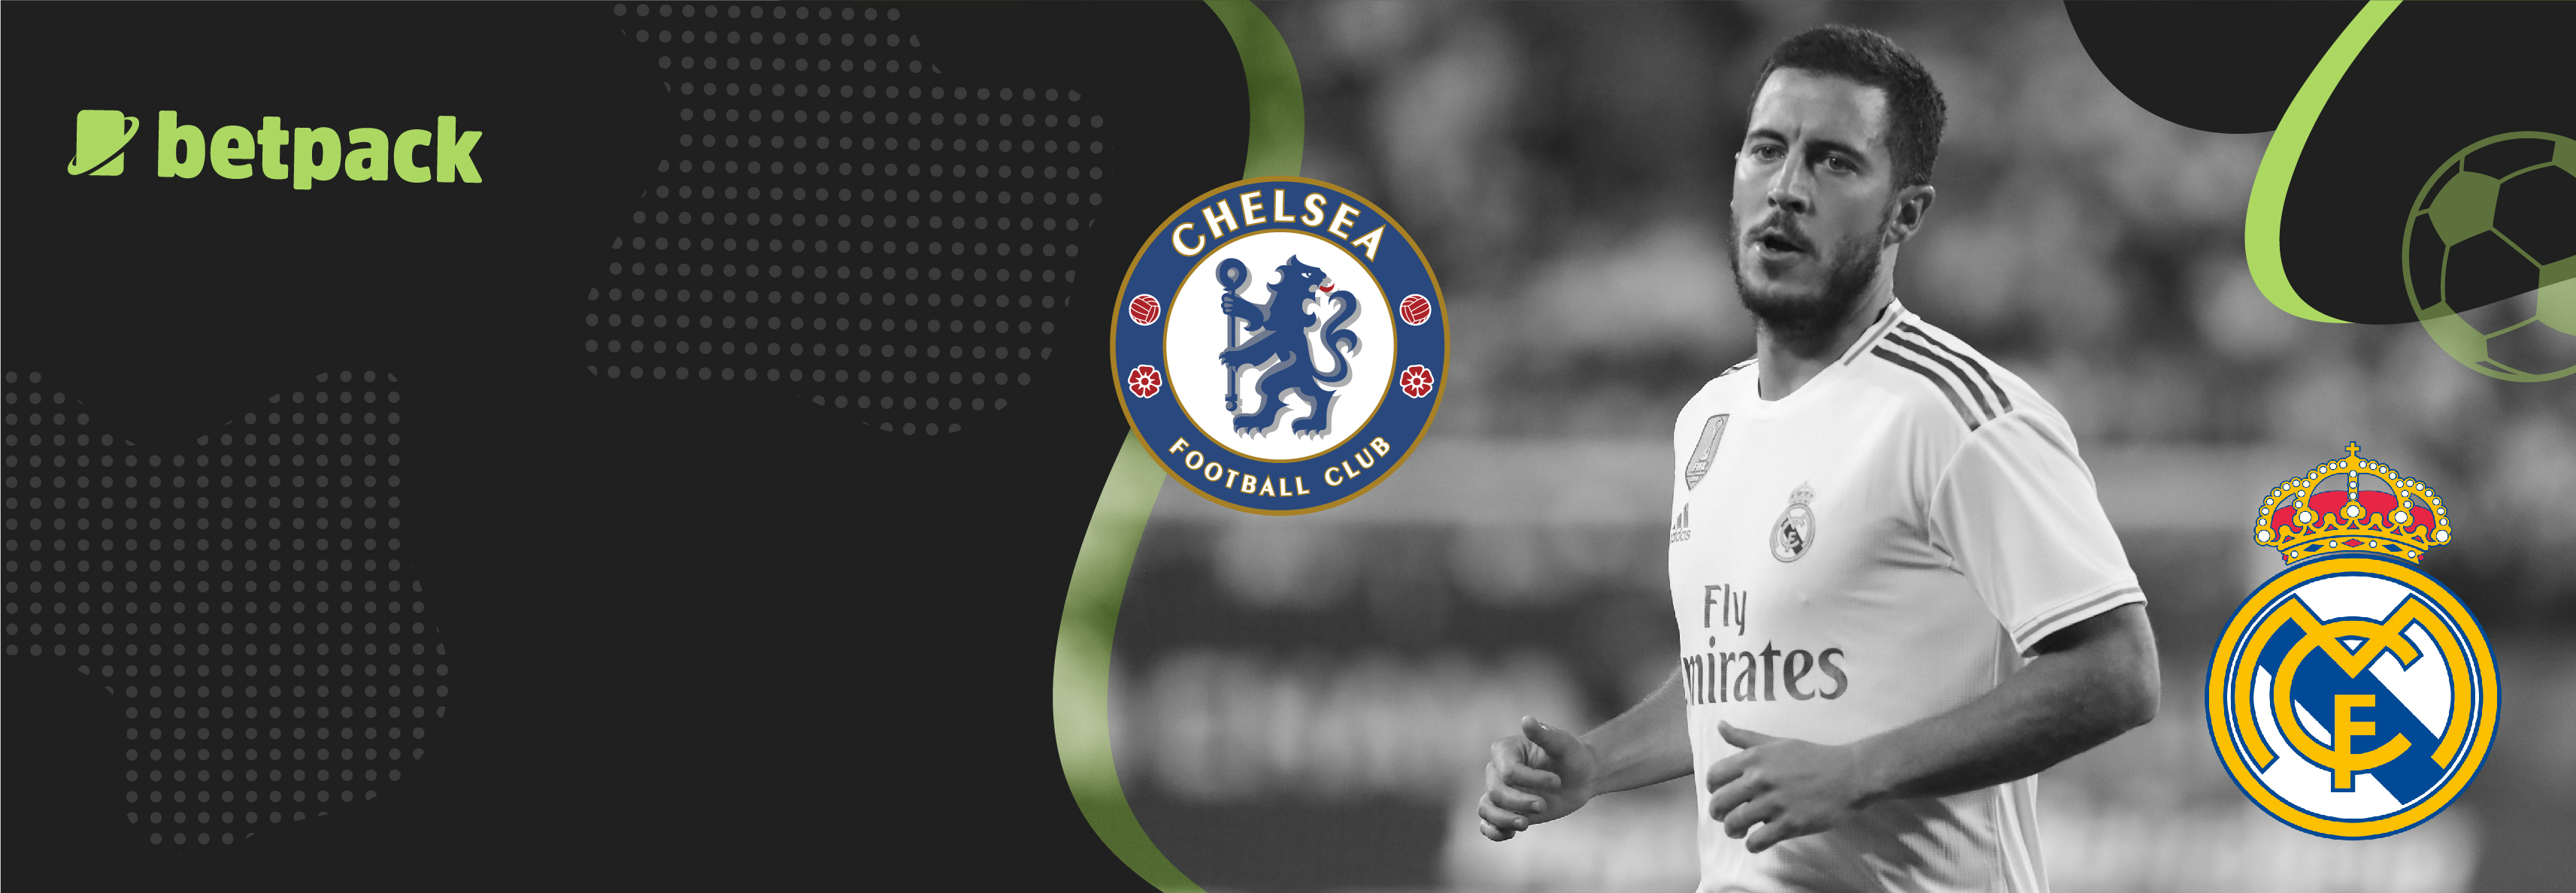 Chelsea is considering the prospect of signing Hazard